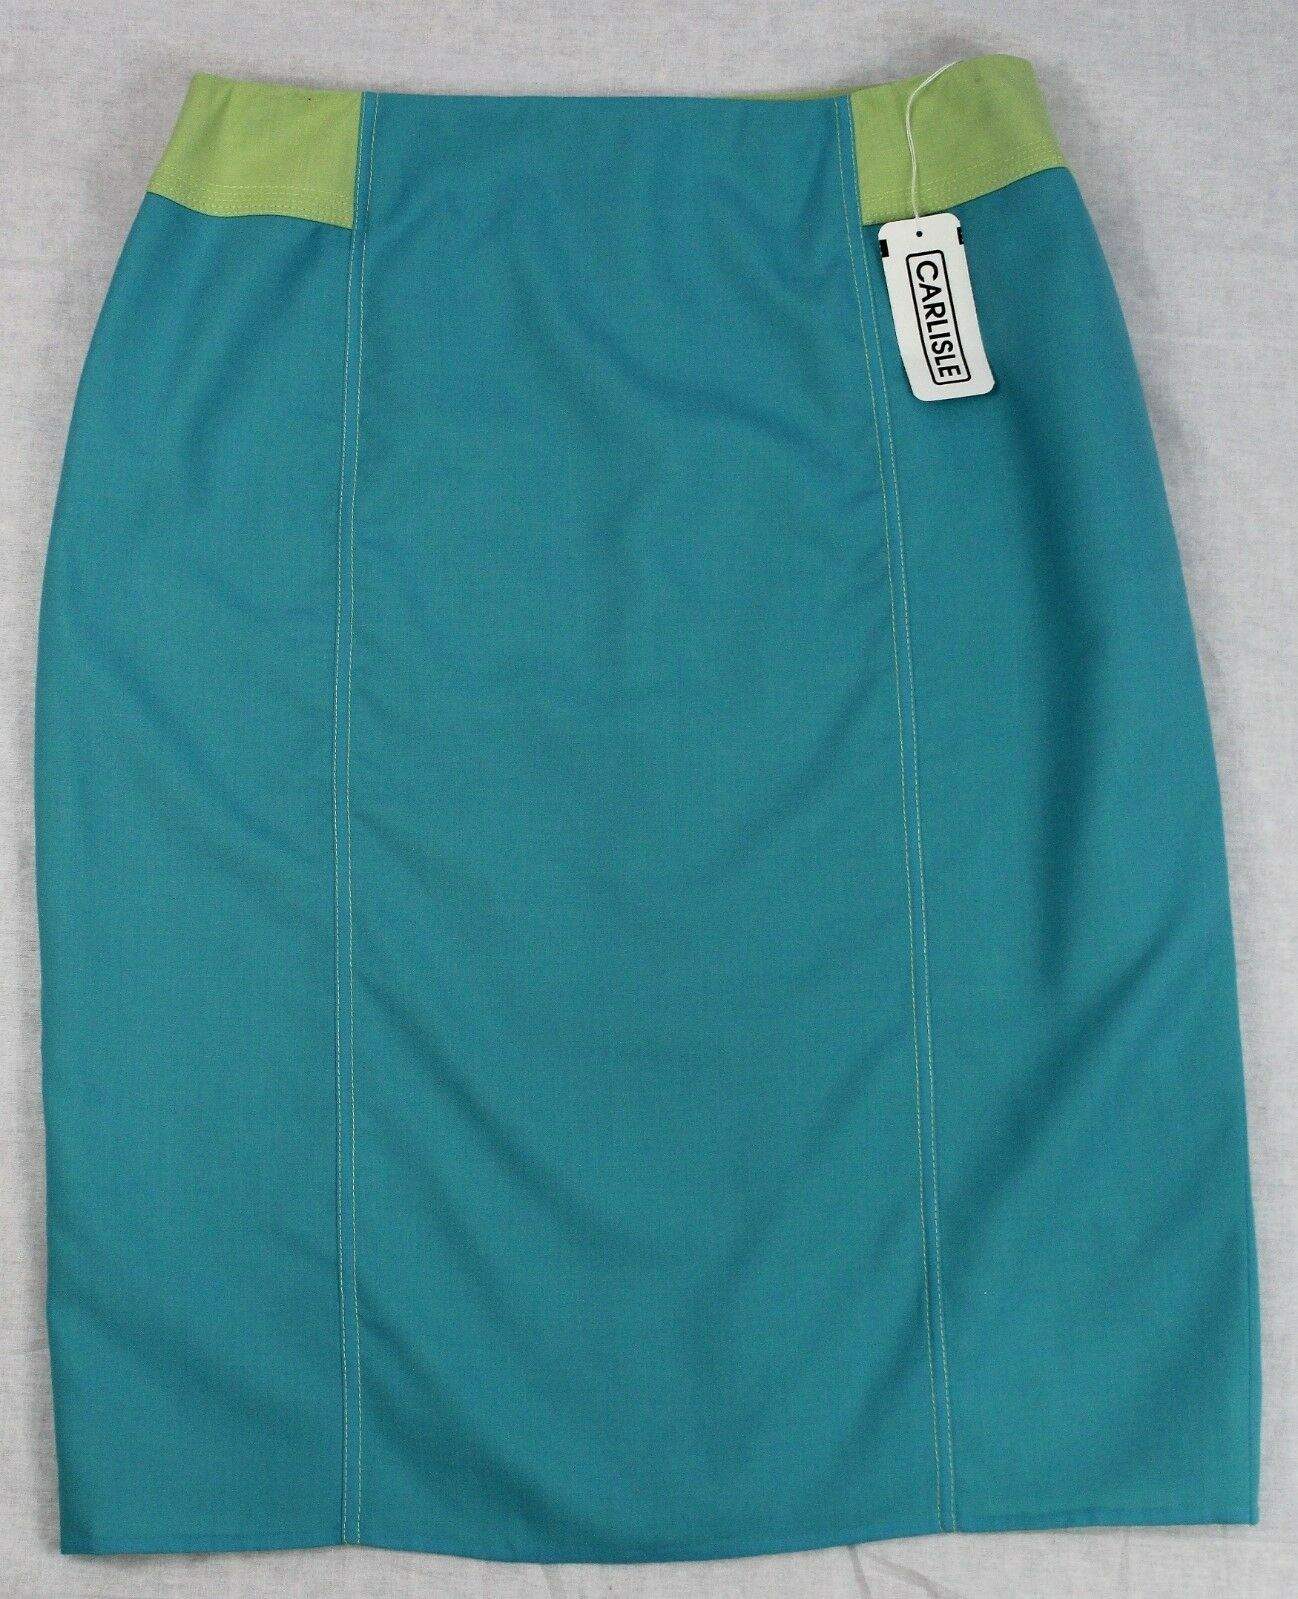 NEW Carlise Skirt  Classic Style  Bring Some color to Your Fall Wardrobe  Sz 12